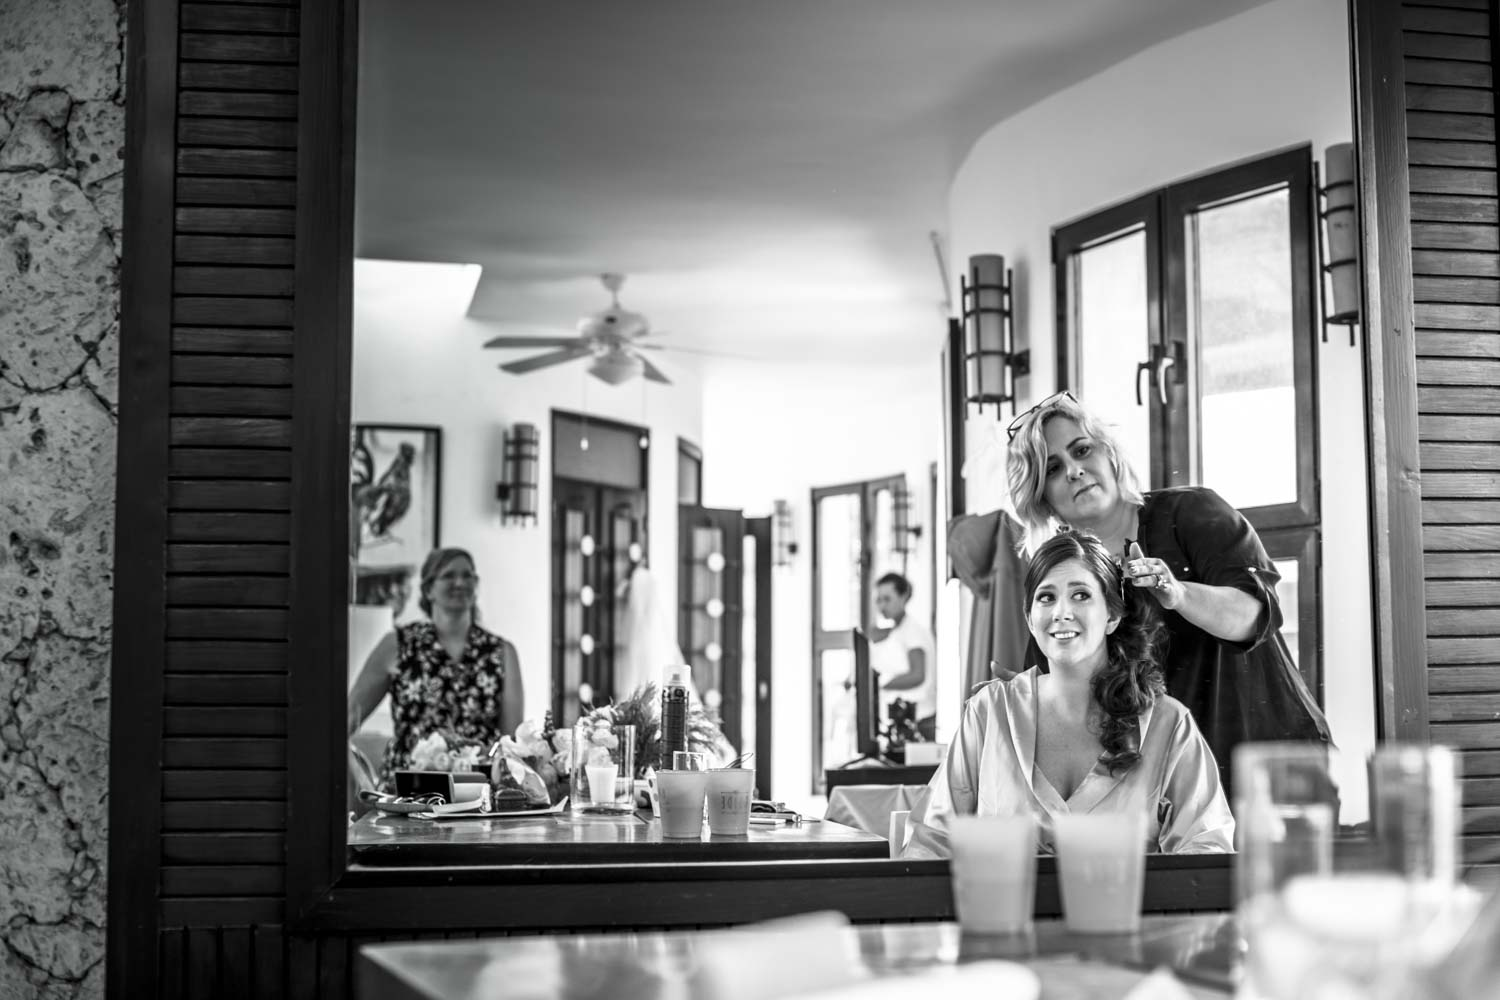 Wedding photographer captures bride looks into the mirror at Hotel Magnifico Cabarete Dominican Republic